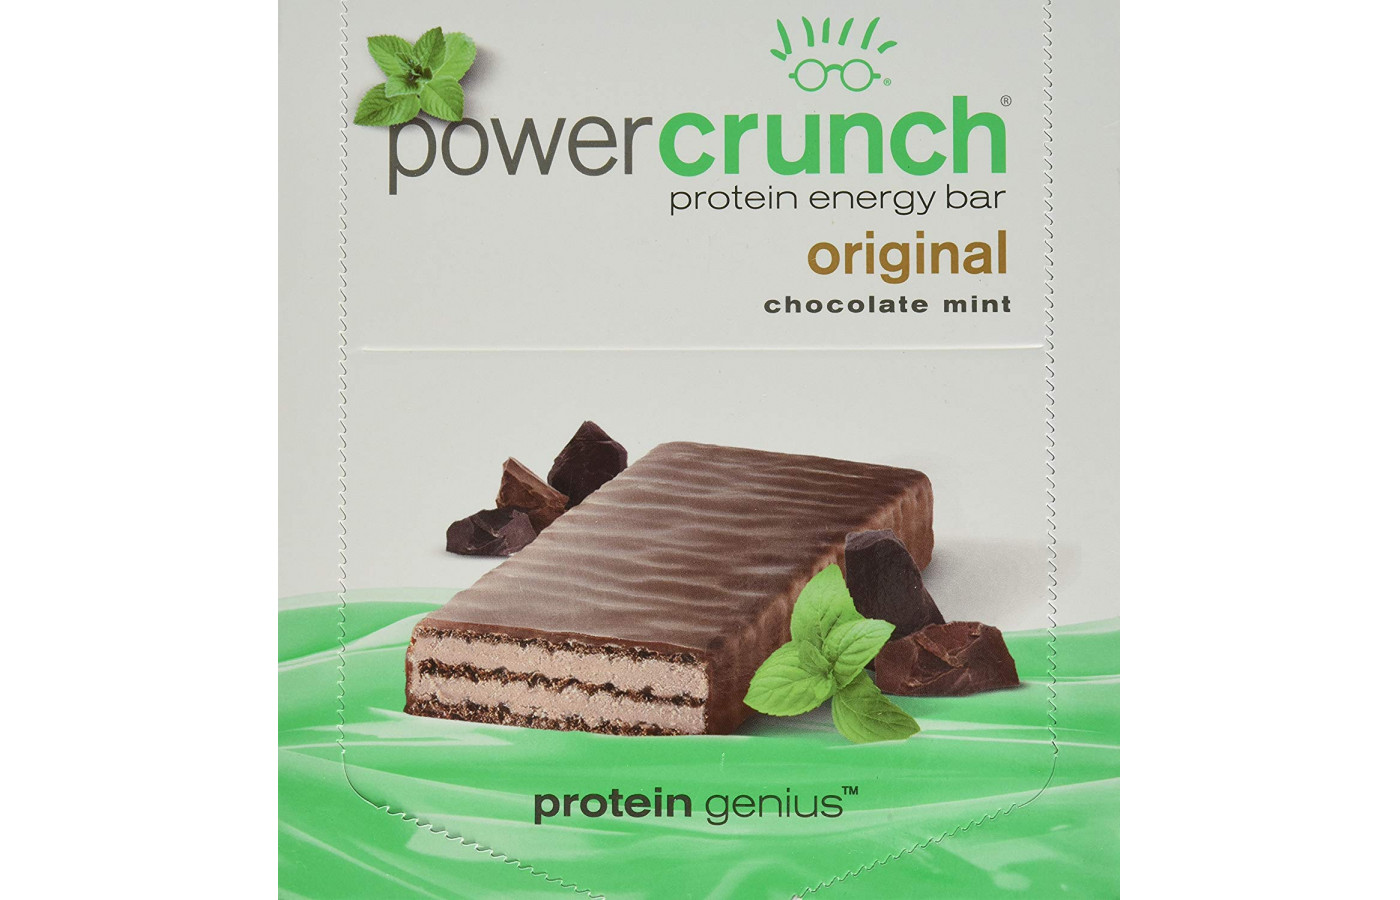 powercrunch box